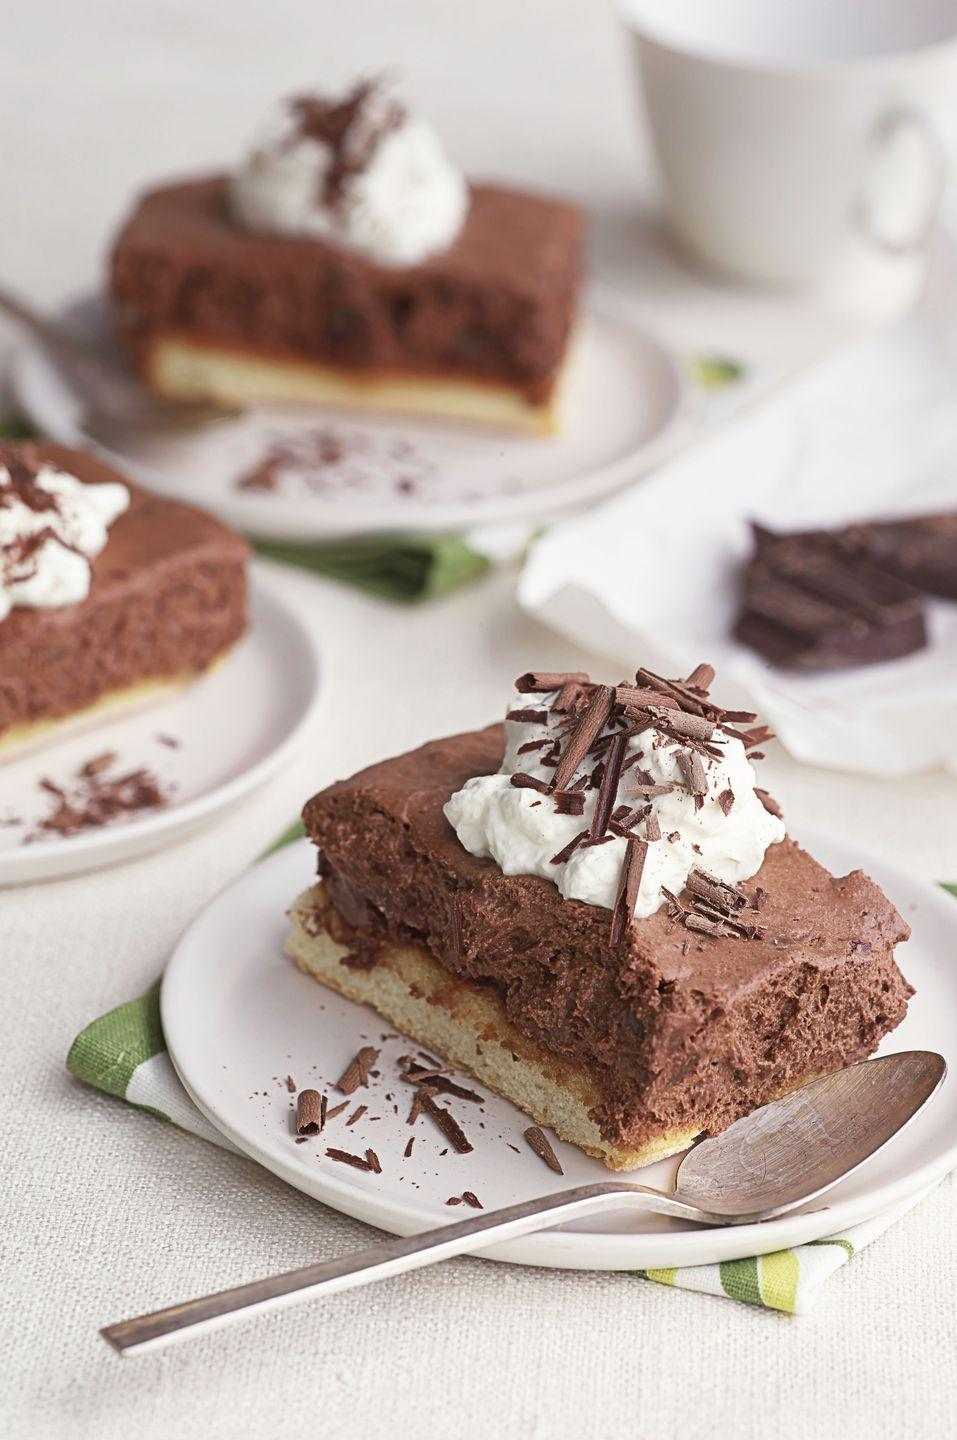 """<p>This one needs to get into the fridge at least 12 hours before the party starts, but it'll be worth it. Trust.</p><p><em><a href=""""https://www.goodhousekeeping.com/food-recipes/dessert/a37174/chocolate-icebox-cake-recipe/"""" rel=""""nofollow noopener"""" target=""""_blank"""" data-ylk=""""slk:Get the recipe for Chocolate Icebox Cake »"""" class=""""link rapid-noclick-resp"""">Get the recipe for Chocolate Icebox Cake »</a></em> </p>"""